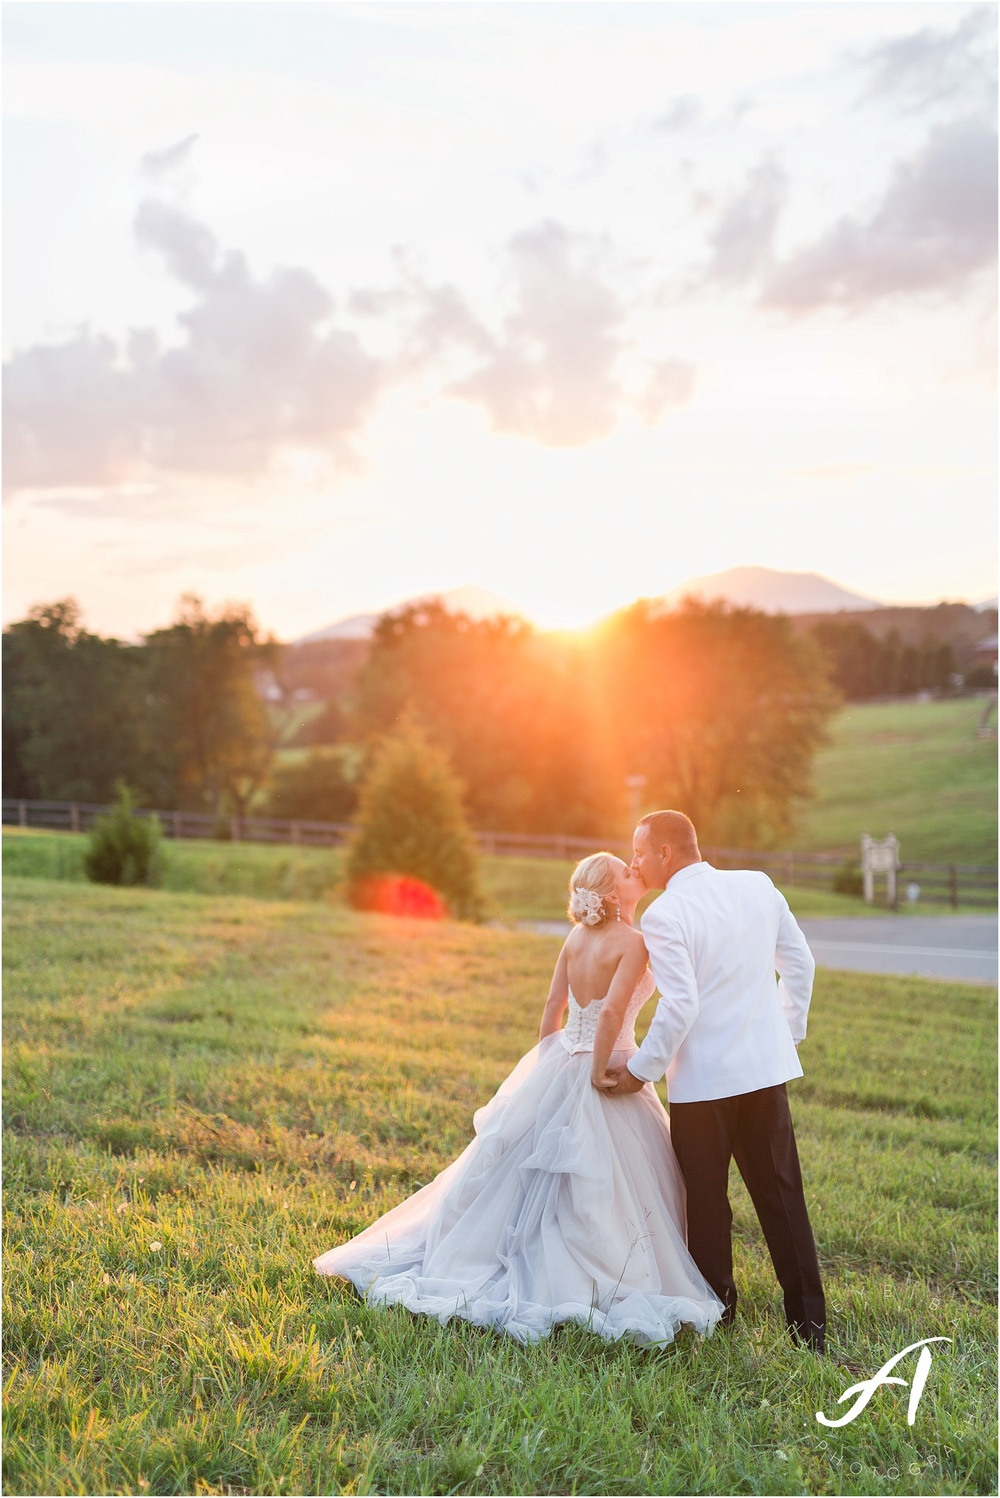 Elegant blush summer wedding at The Trivium Estates in Forest, Virginia || Ashley Eiban Photography || www.ashleyeiban.com